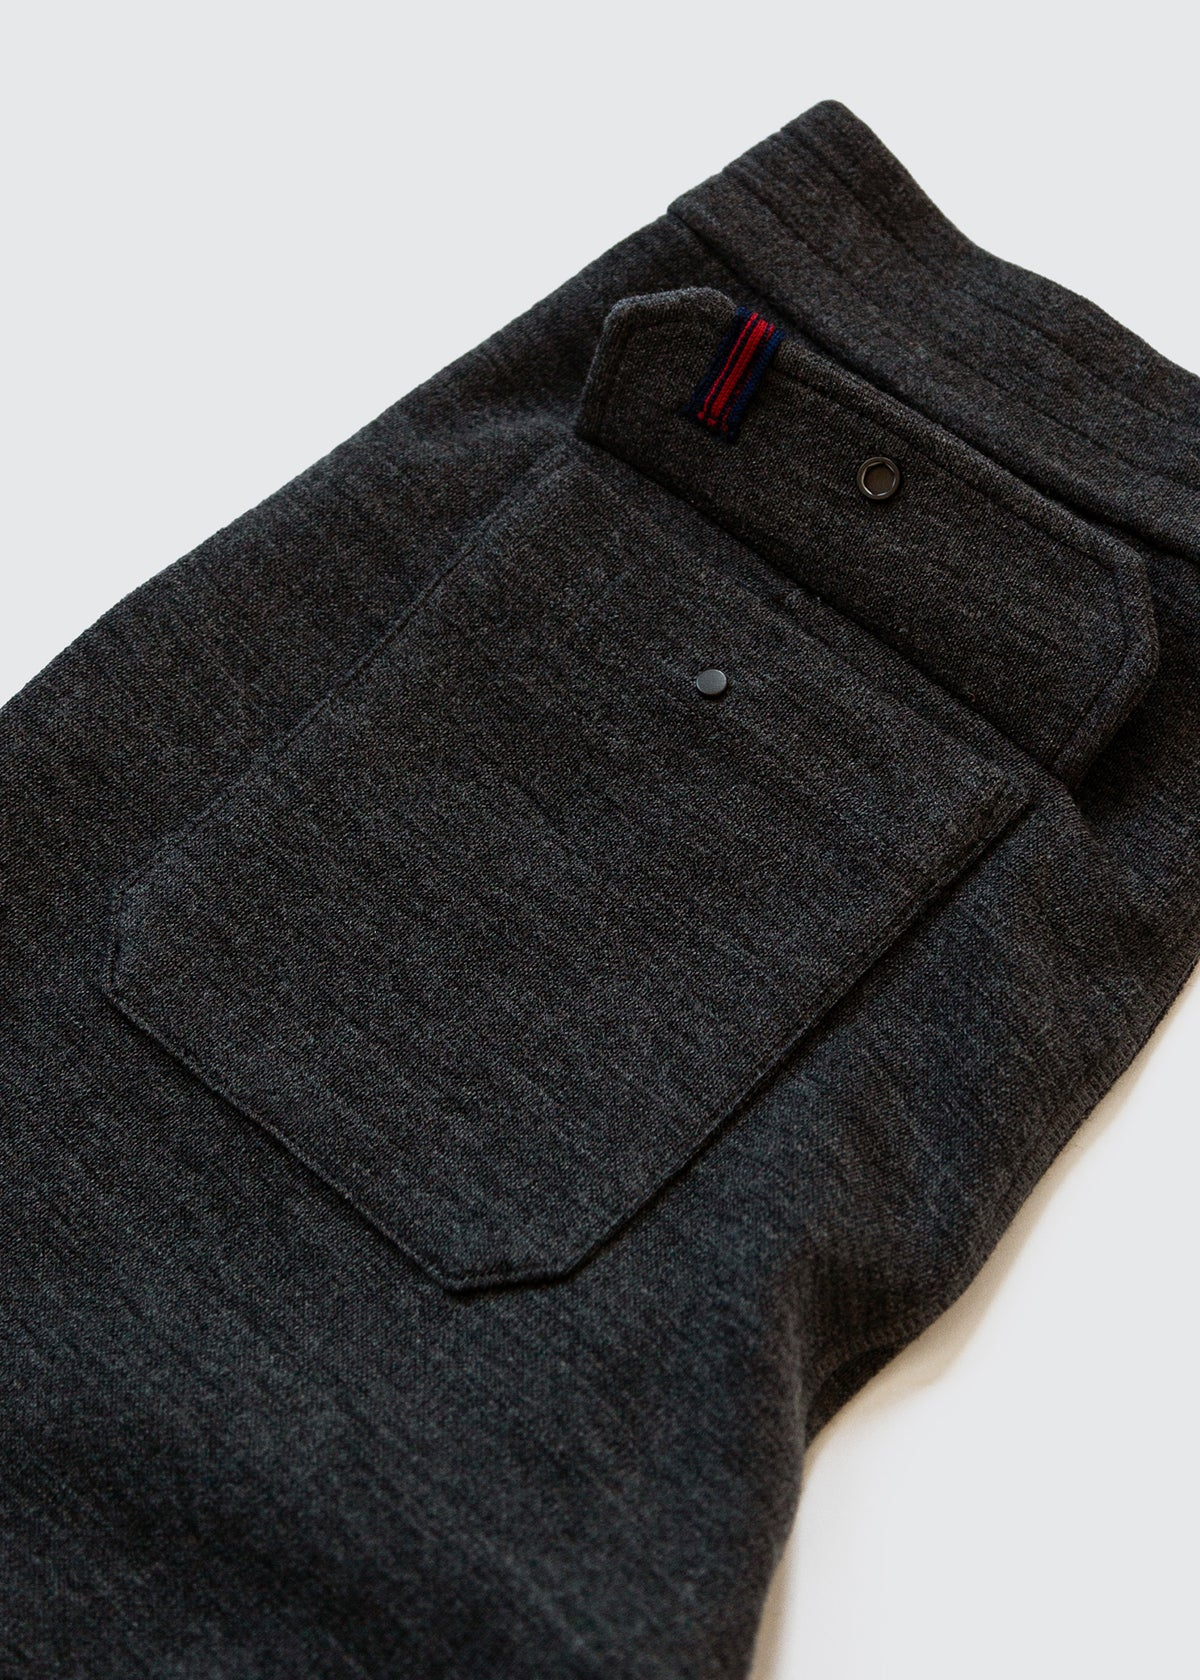 203 - NYLON TROUSER - CHARCOAL - Wilson & Willy's - MPLS Neighbor Goods